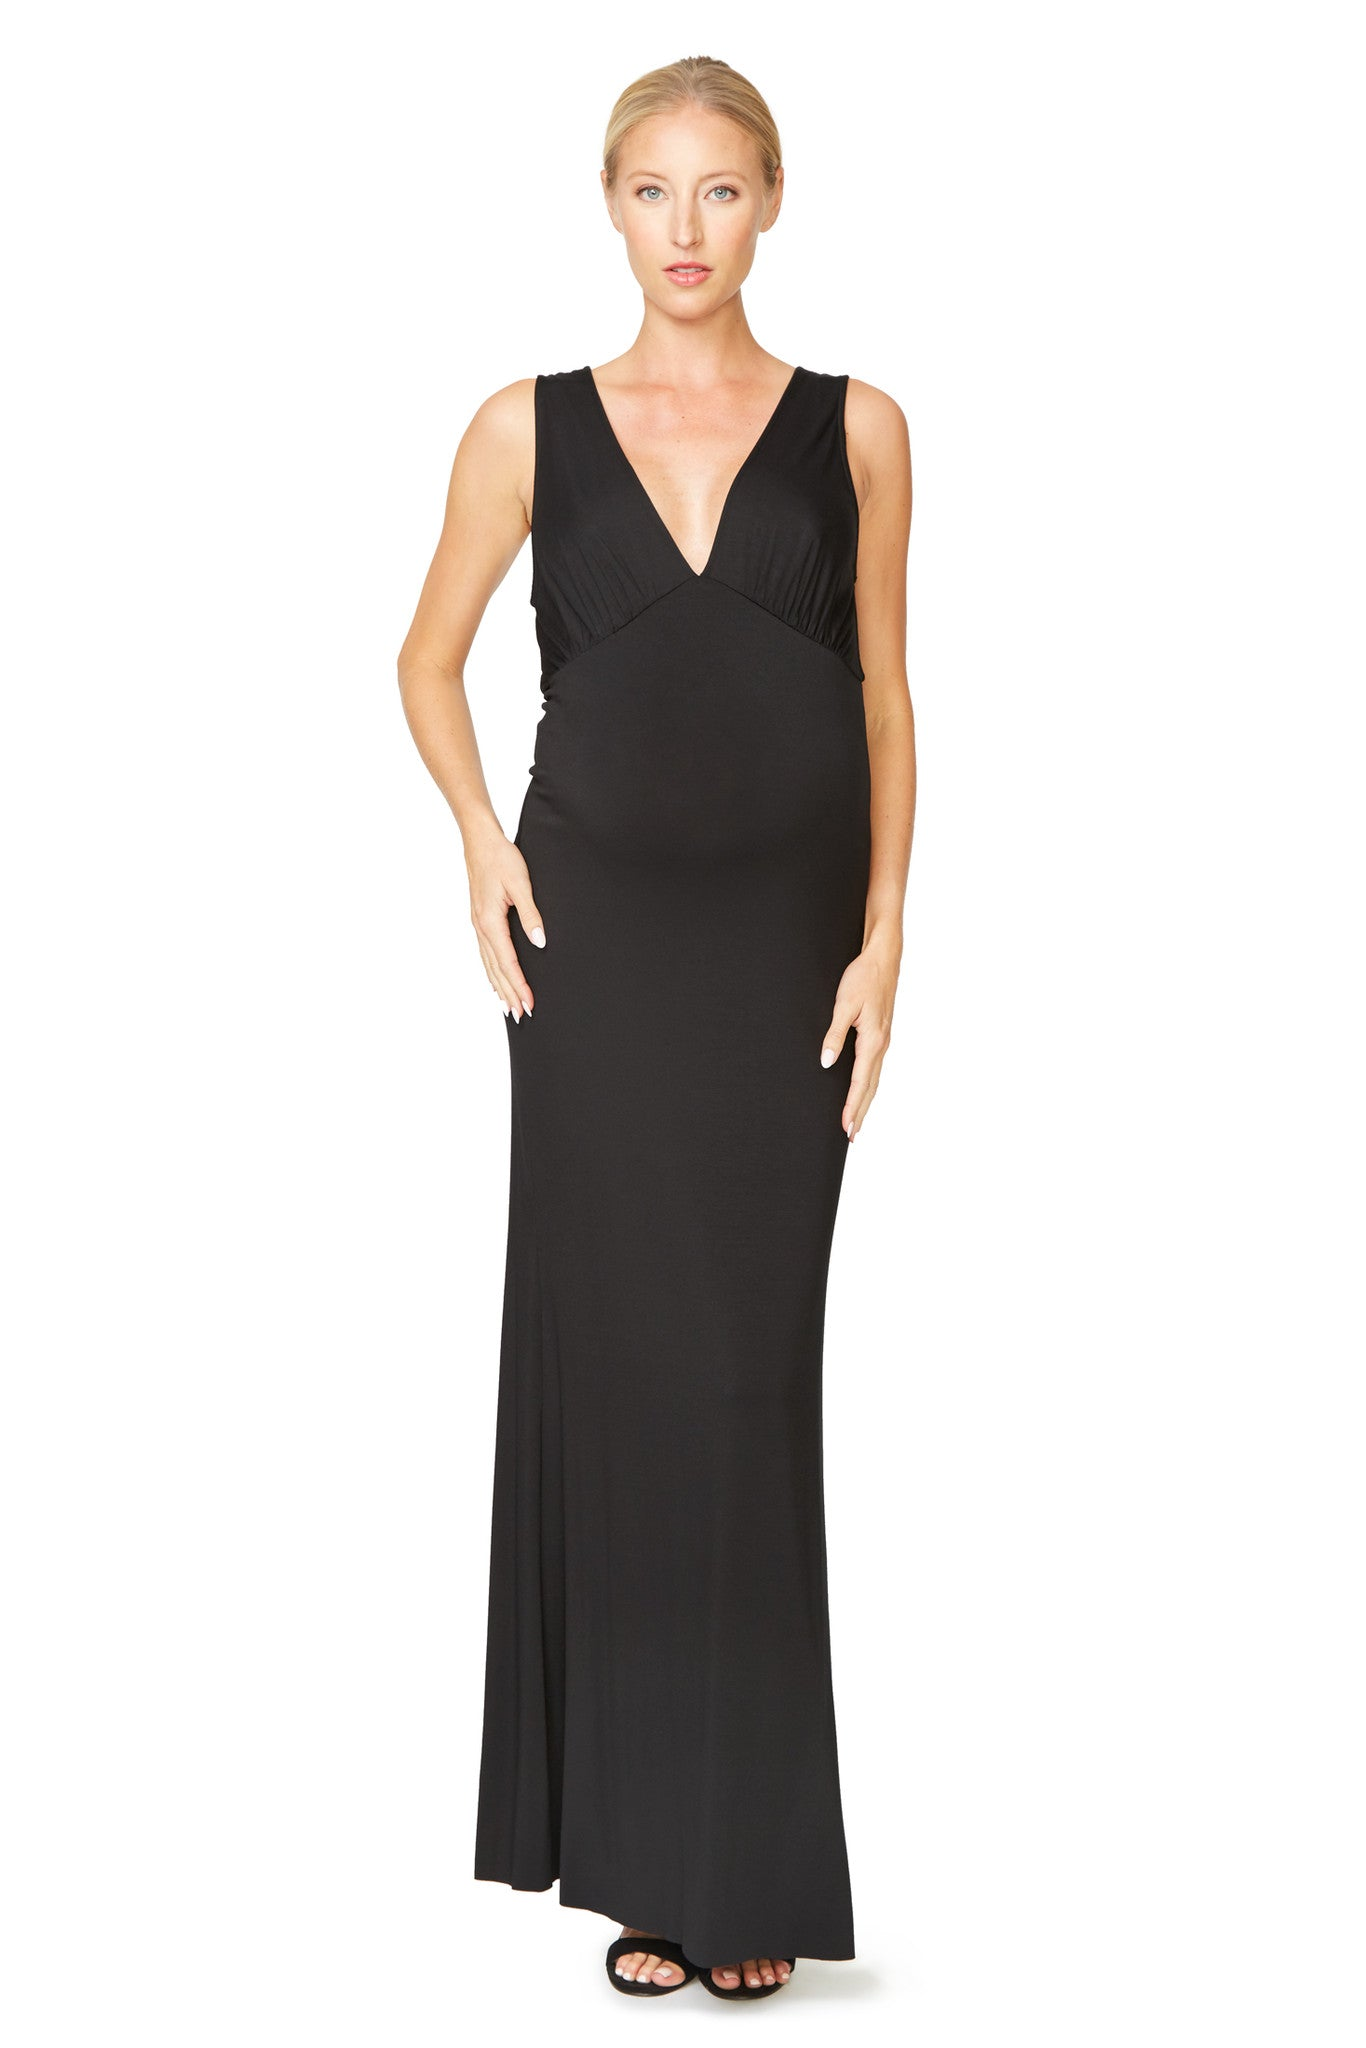 Mariella Dress - Black